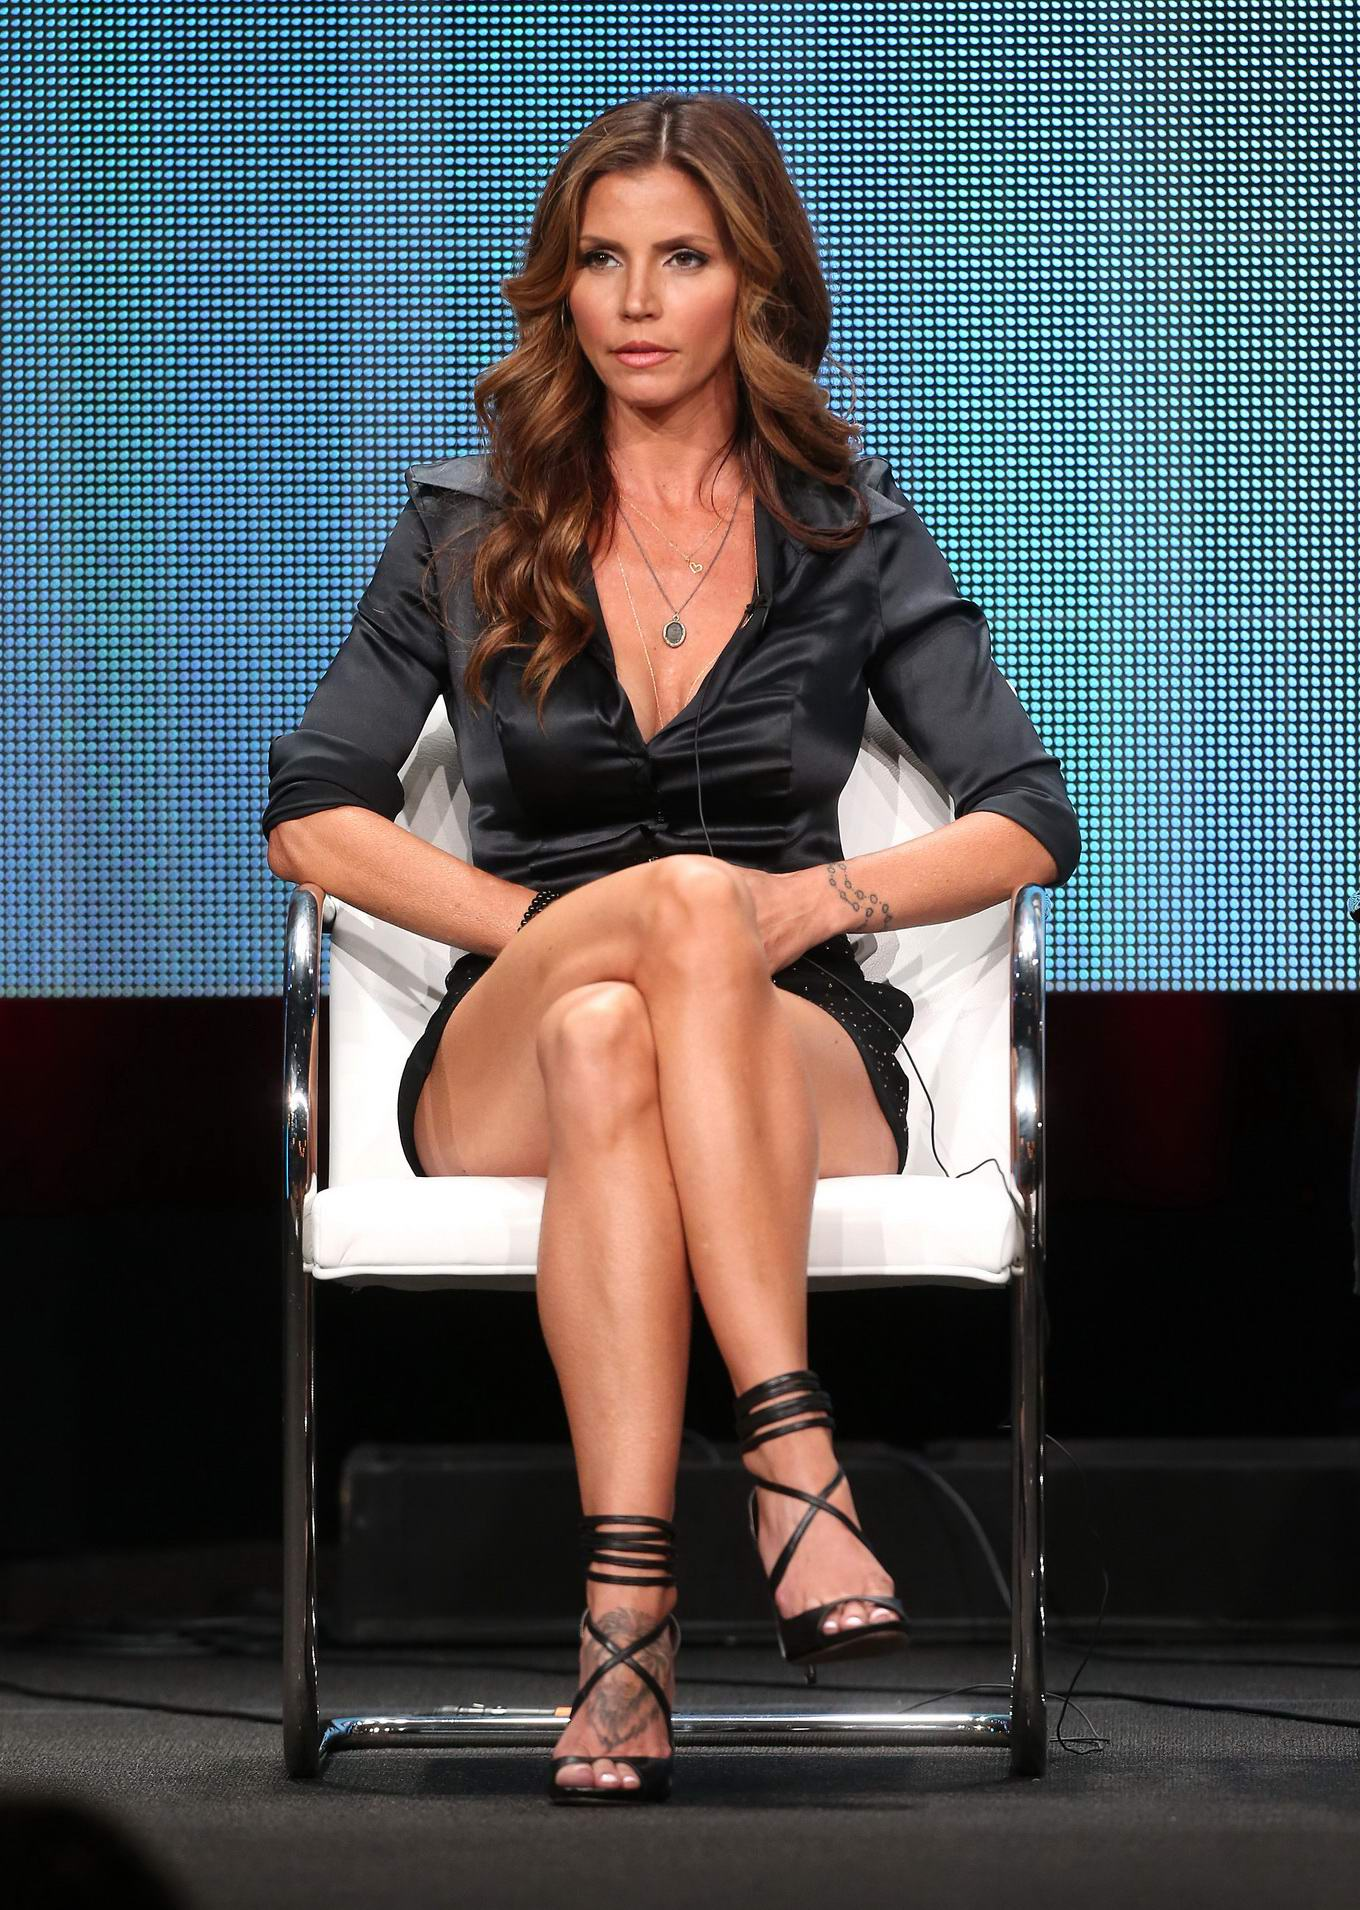 Opinion Charisma carpenter cleavage opinion